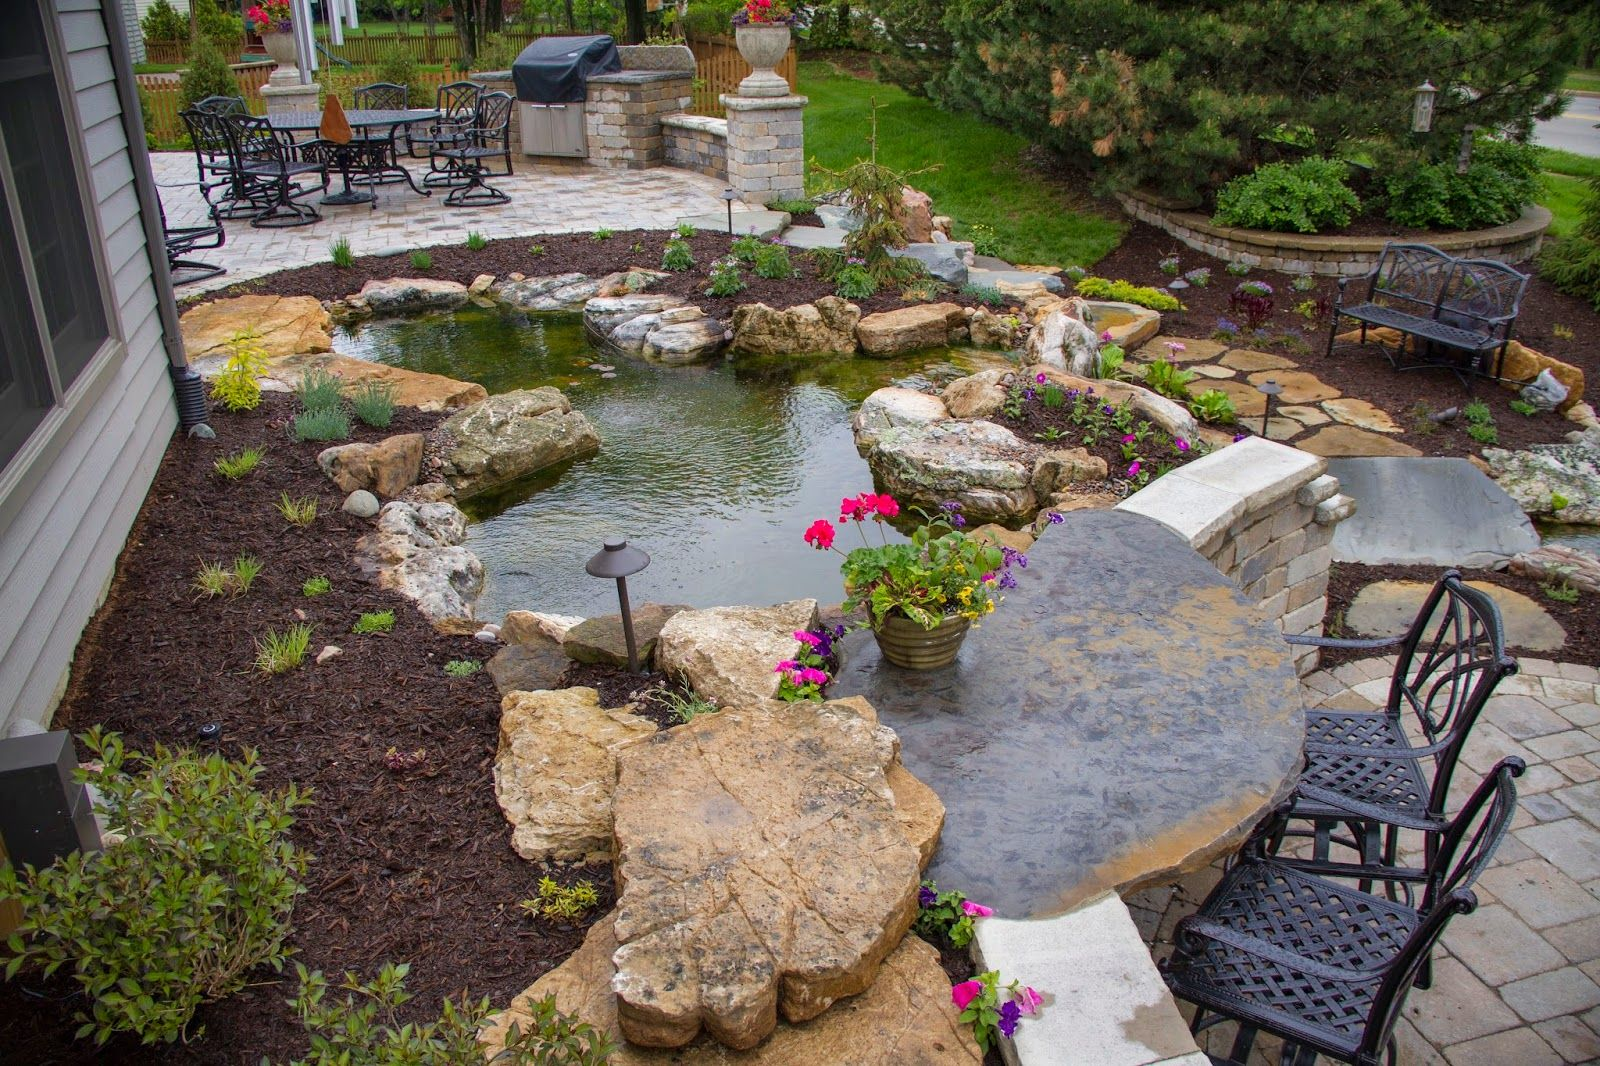 Who Doesn't Want the Perfect Backyard | Backyard, Pond and Gardens on outdoor fire ideas, backyard fire places, backyard fire friends, deck fire ideas, barn fire ideas, backyard fire designs, backyard fire pit, backyard fire art, halloween fire ideas, wall fire ideas,